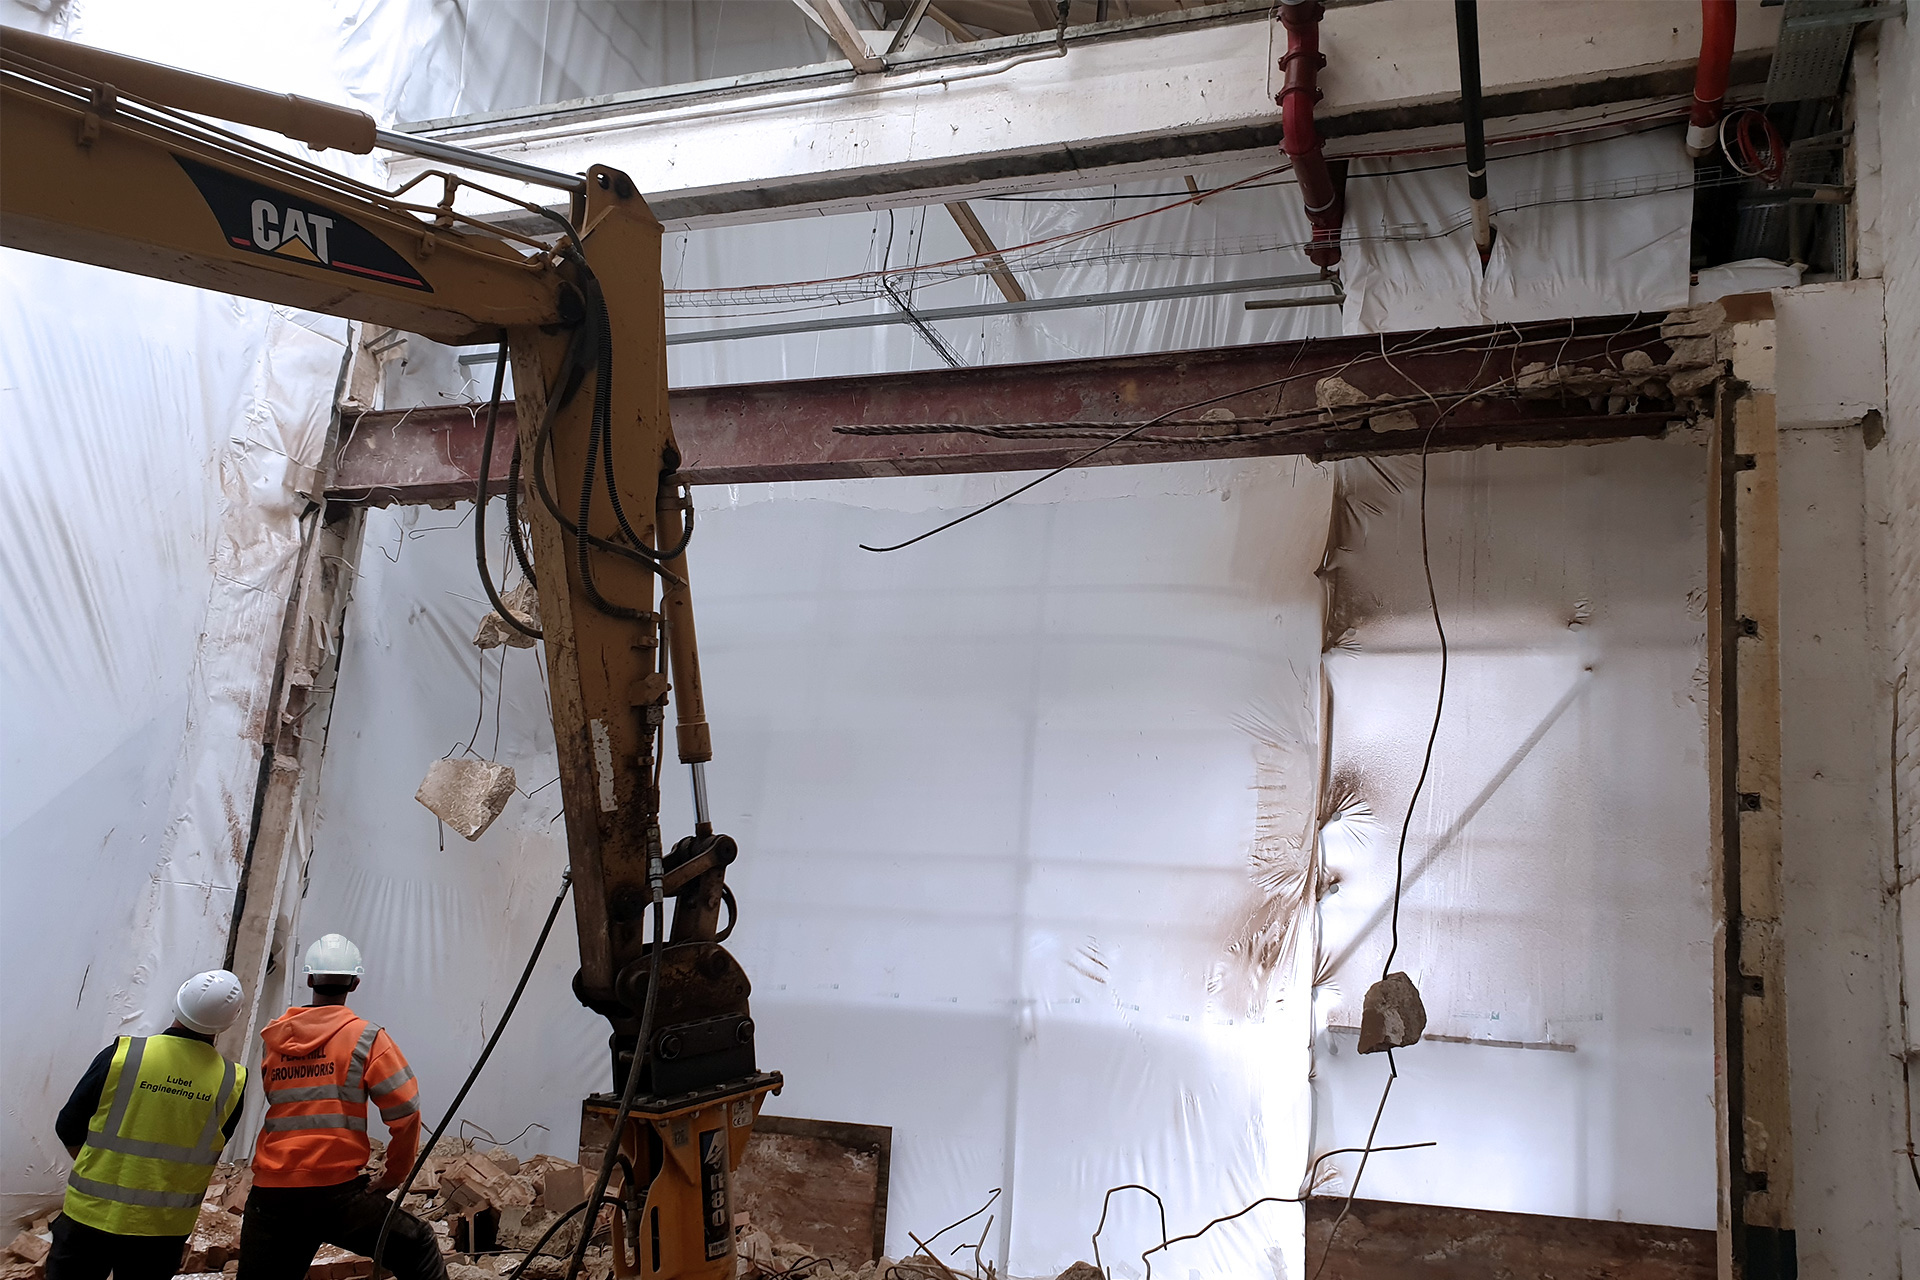 Two workers and an excavator demolishing concrete